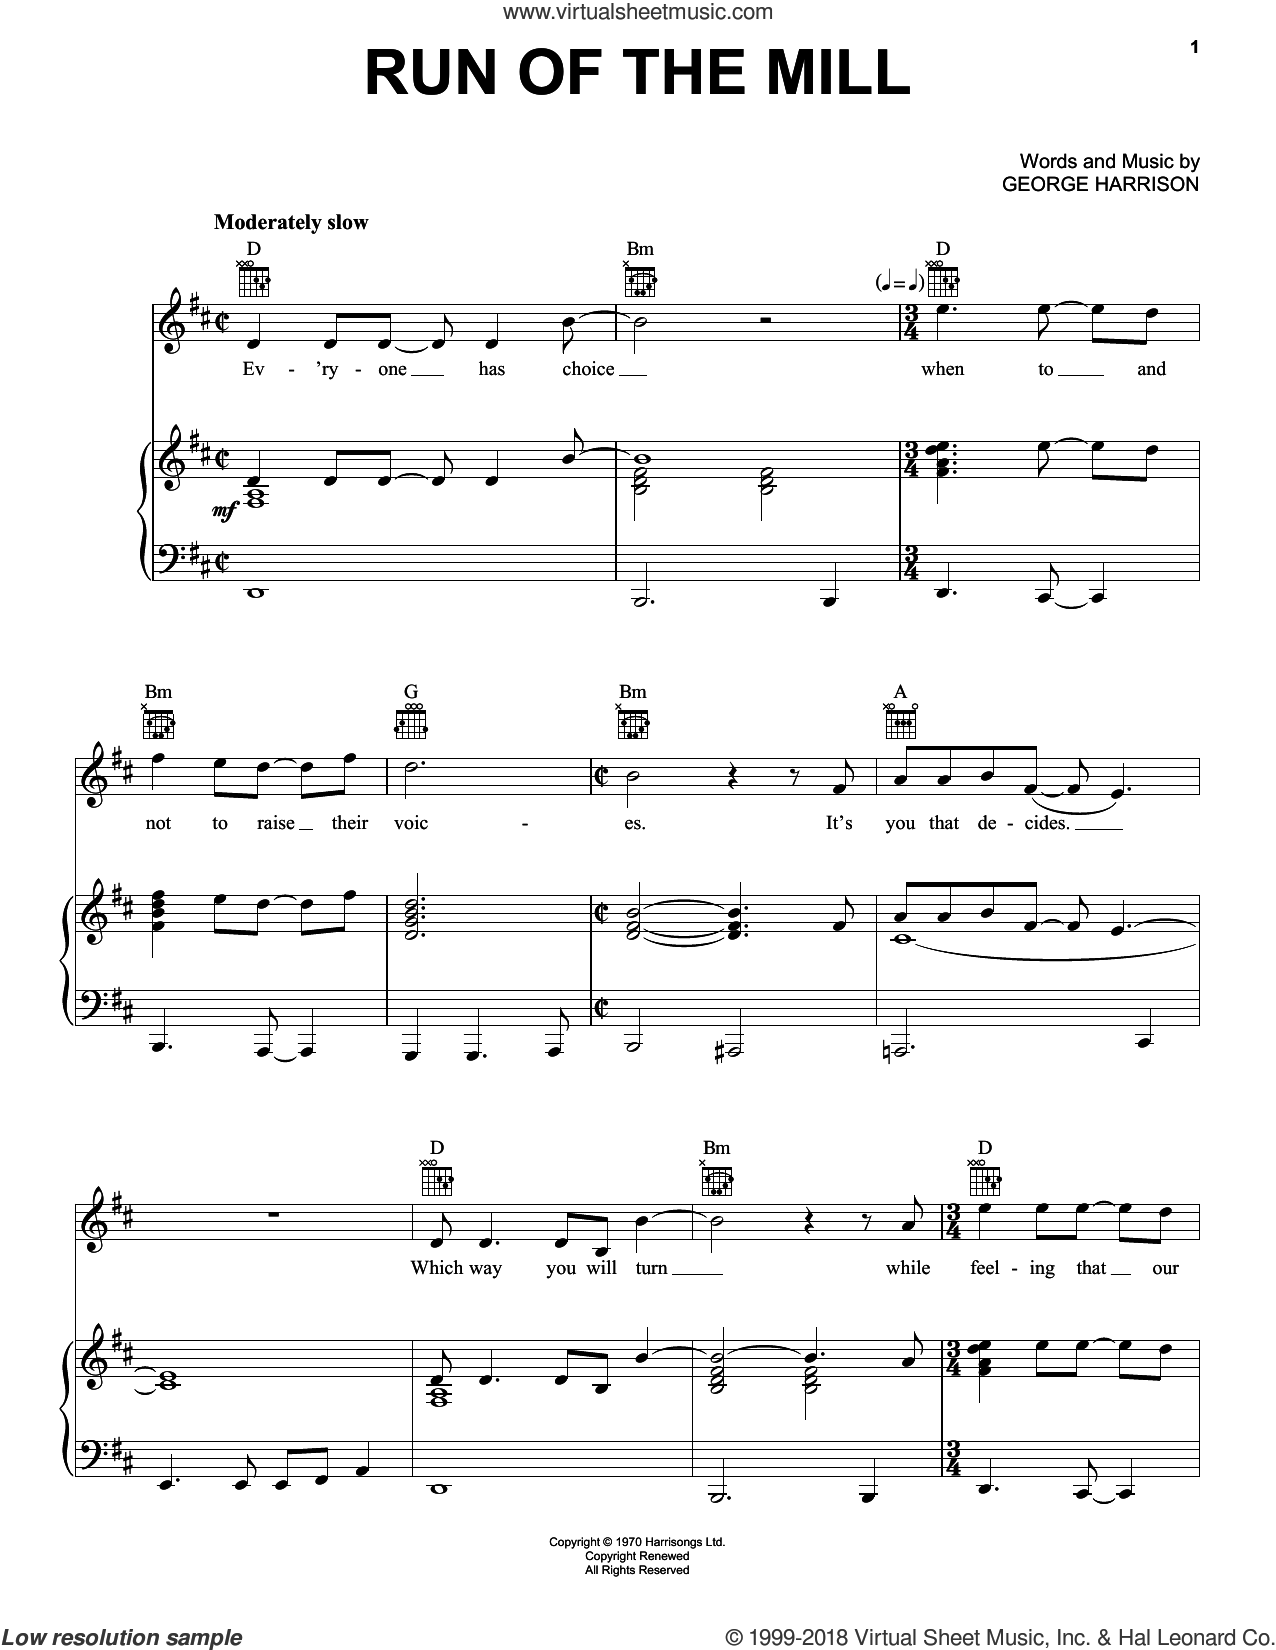 Run Of The Mill sheet music for voice, piano or guitar by George Harrison, intermediate skill level